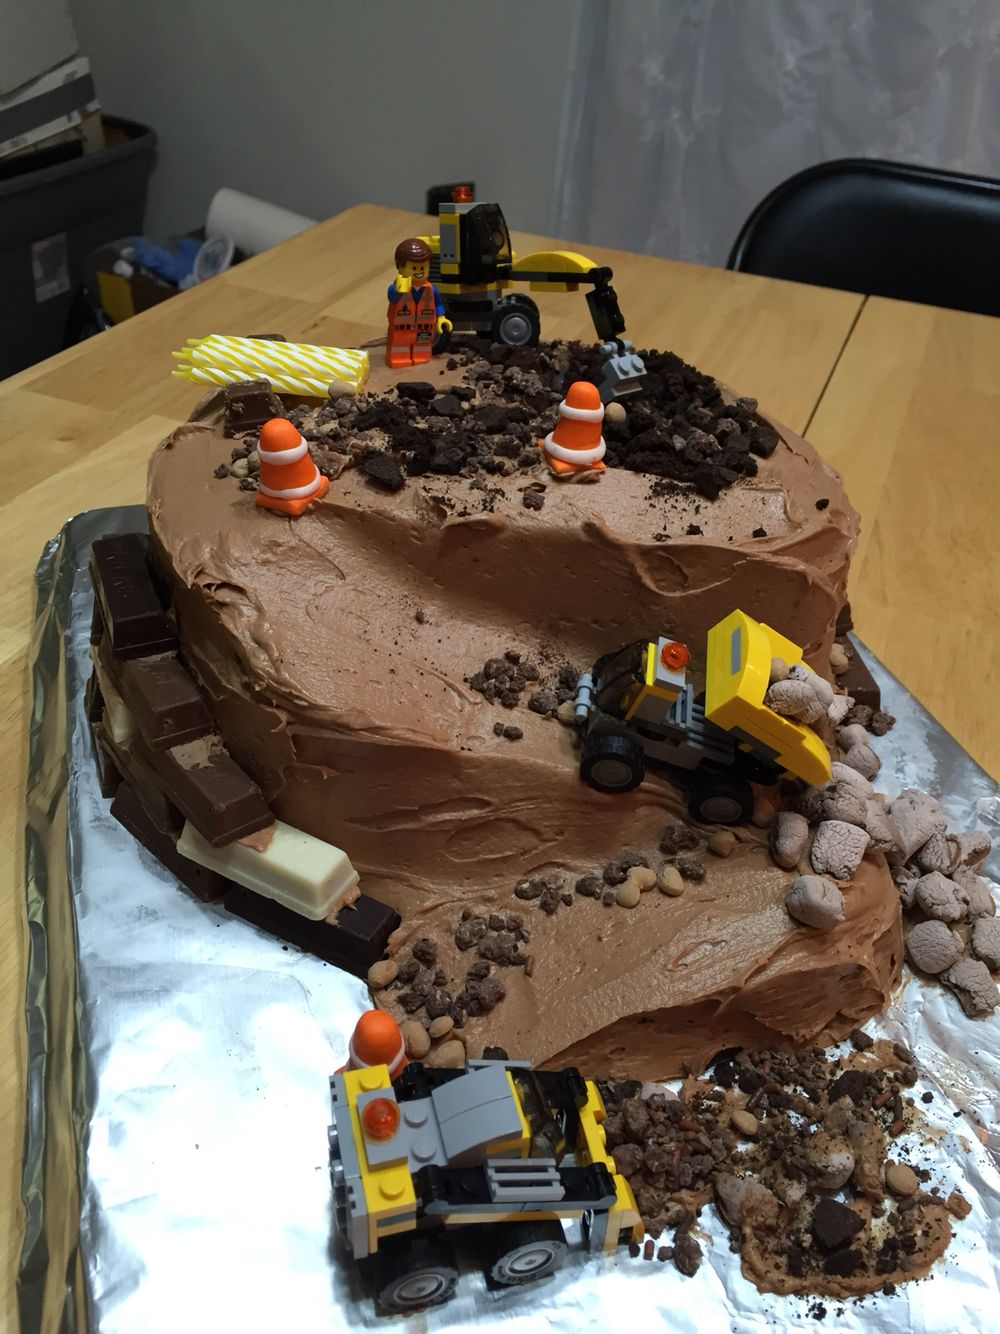 Construction Cake The Legos Were Fun And The Stack Of Construction